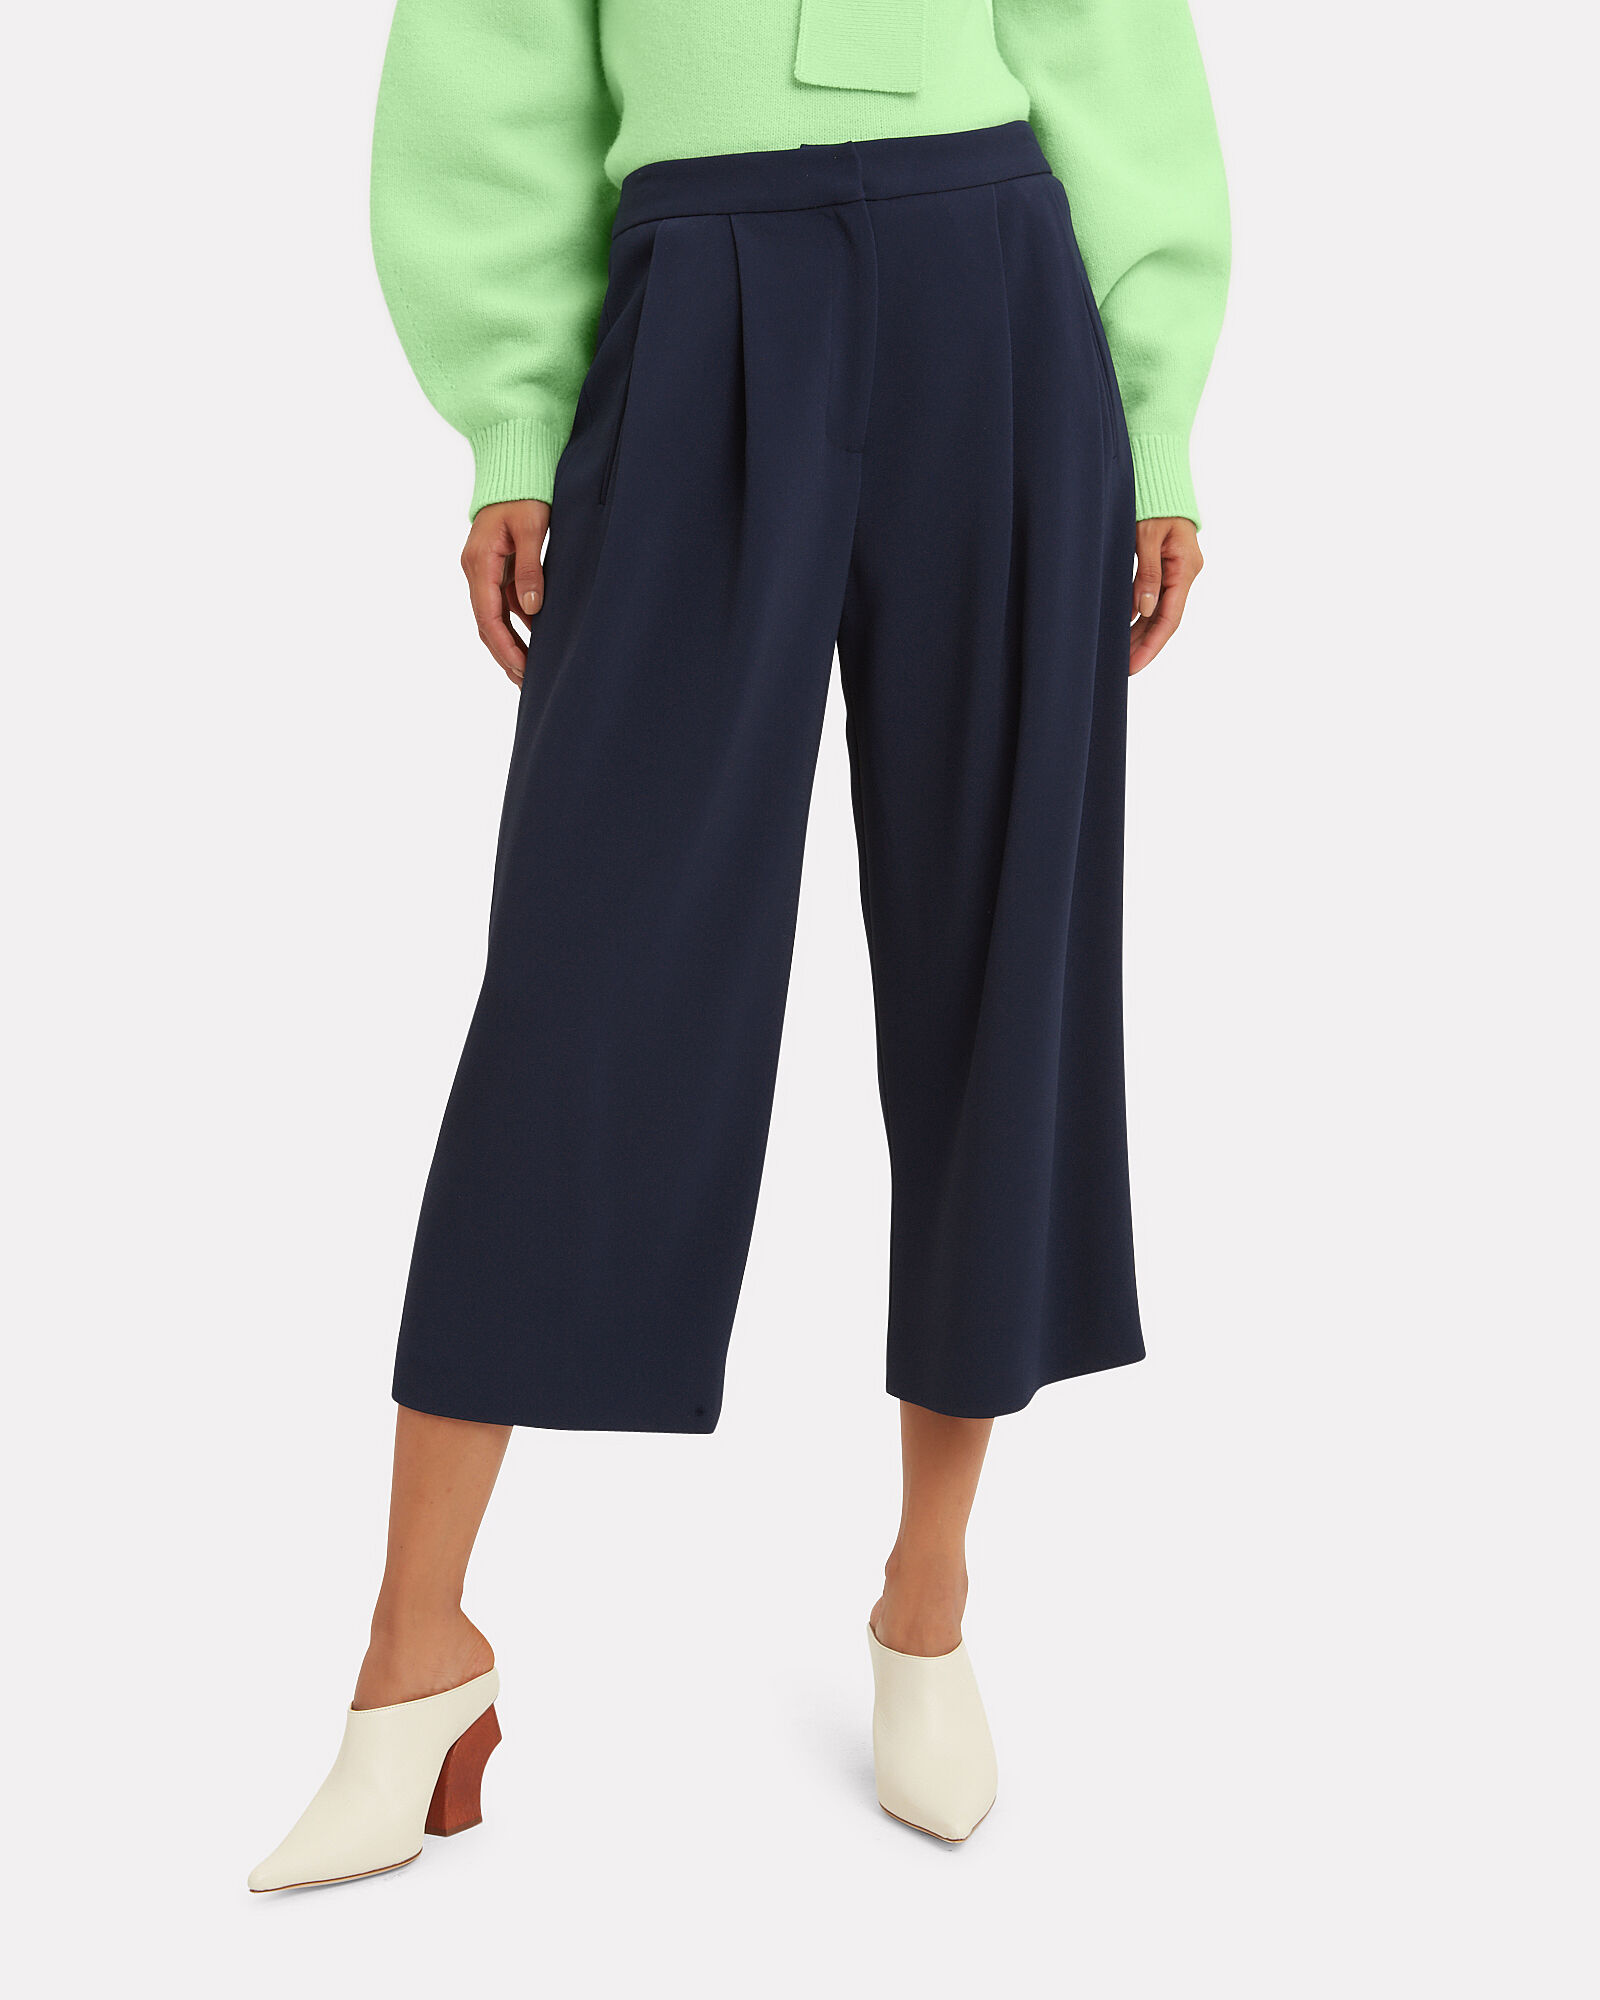 Cady Pleated Culottes, NAVY, hi-res